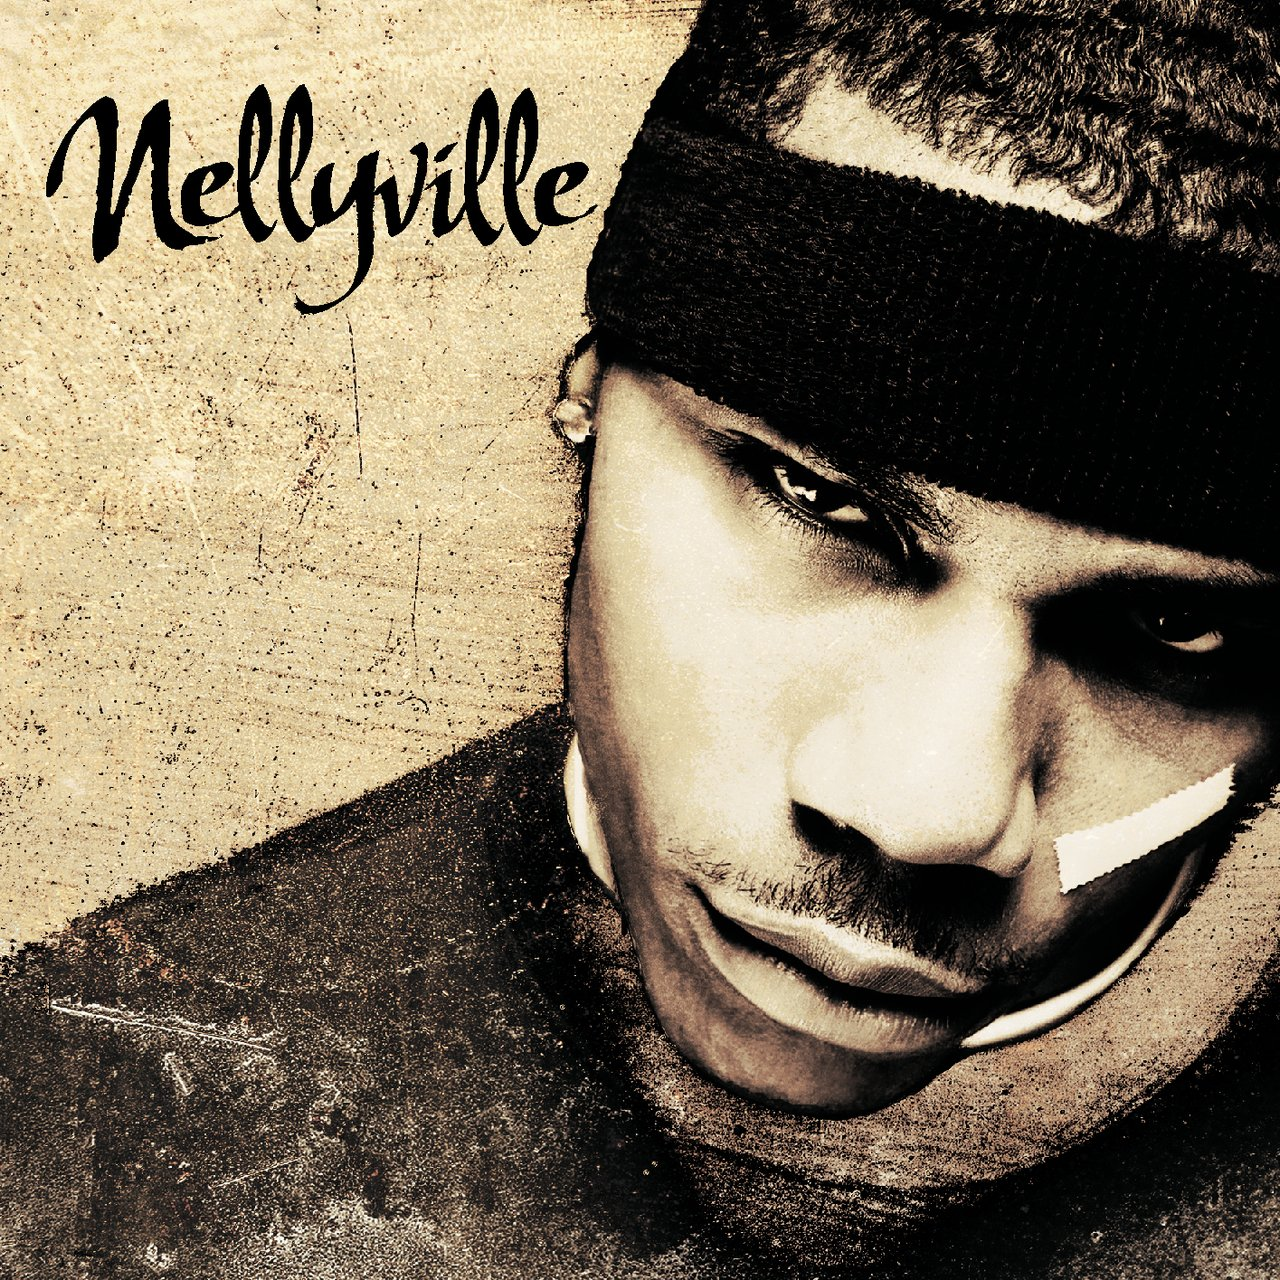 nellyville nelly listen and discover music at. Black Bedroom Furniture Sets. Home Design Ideas